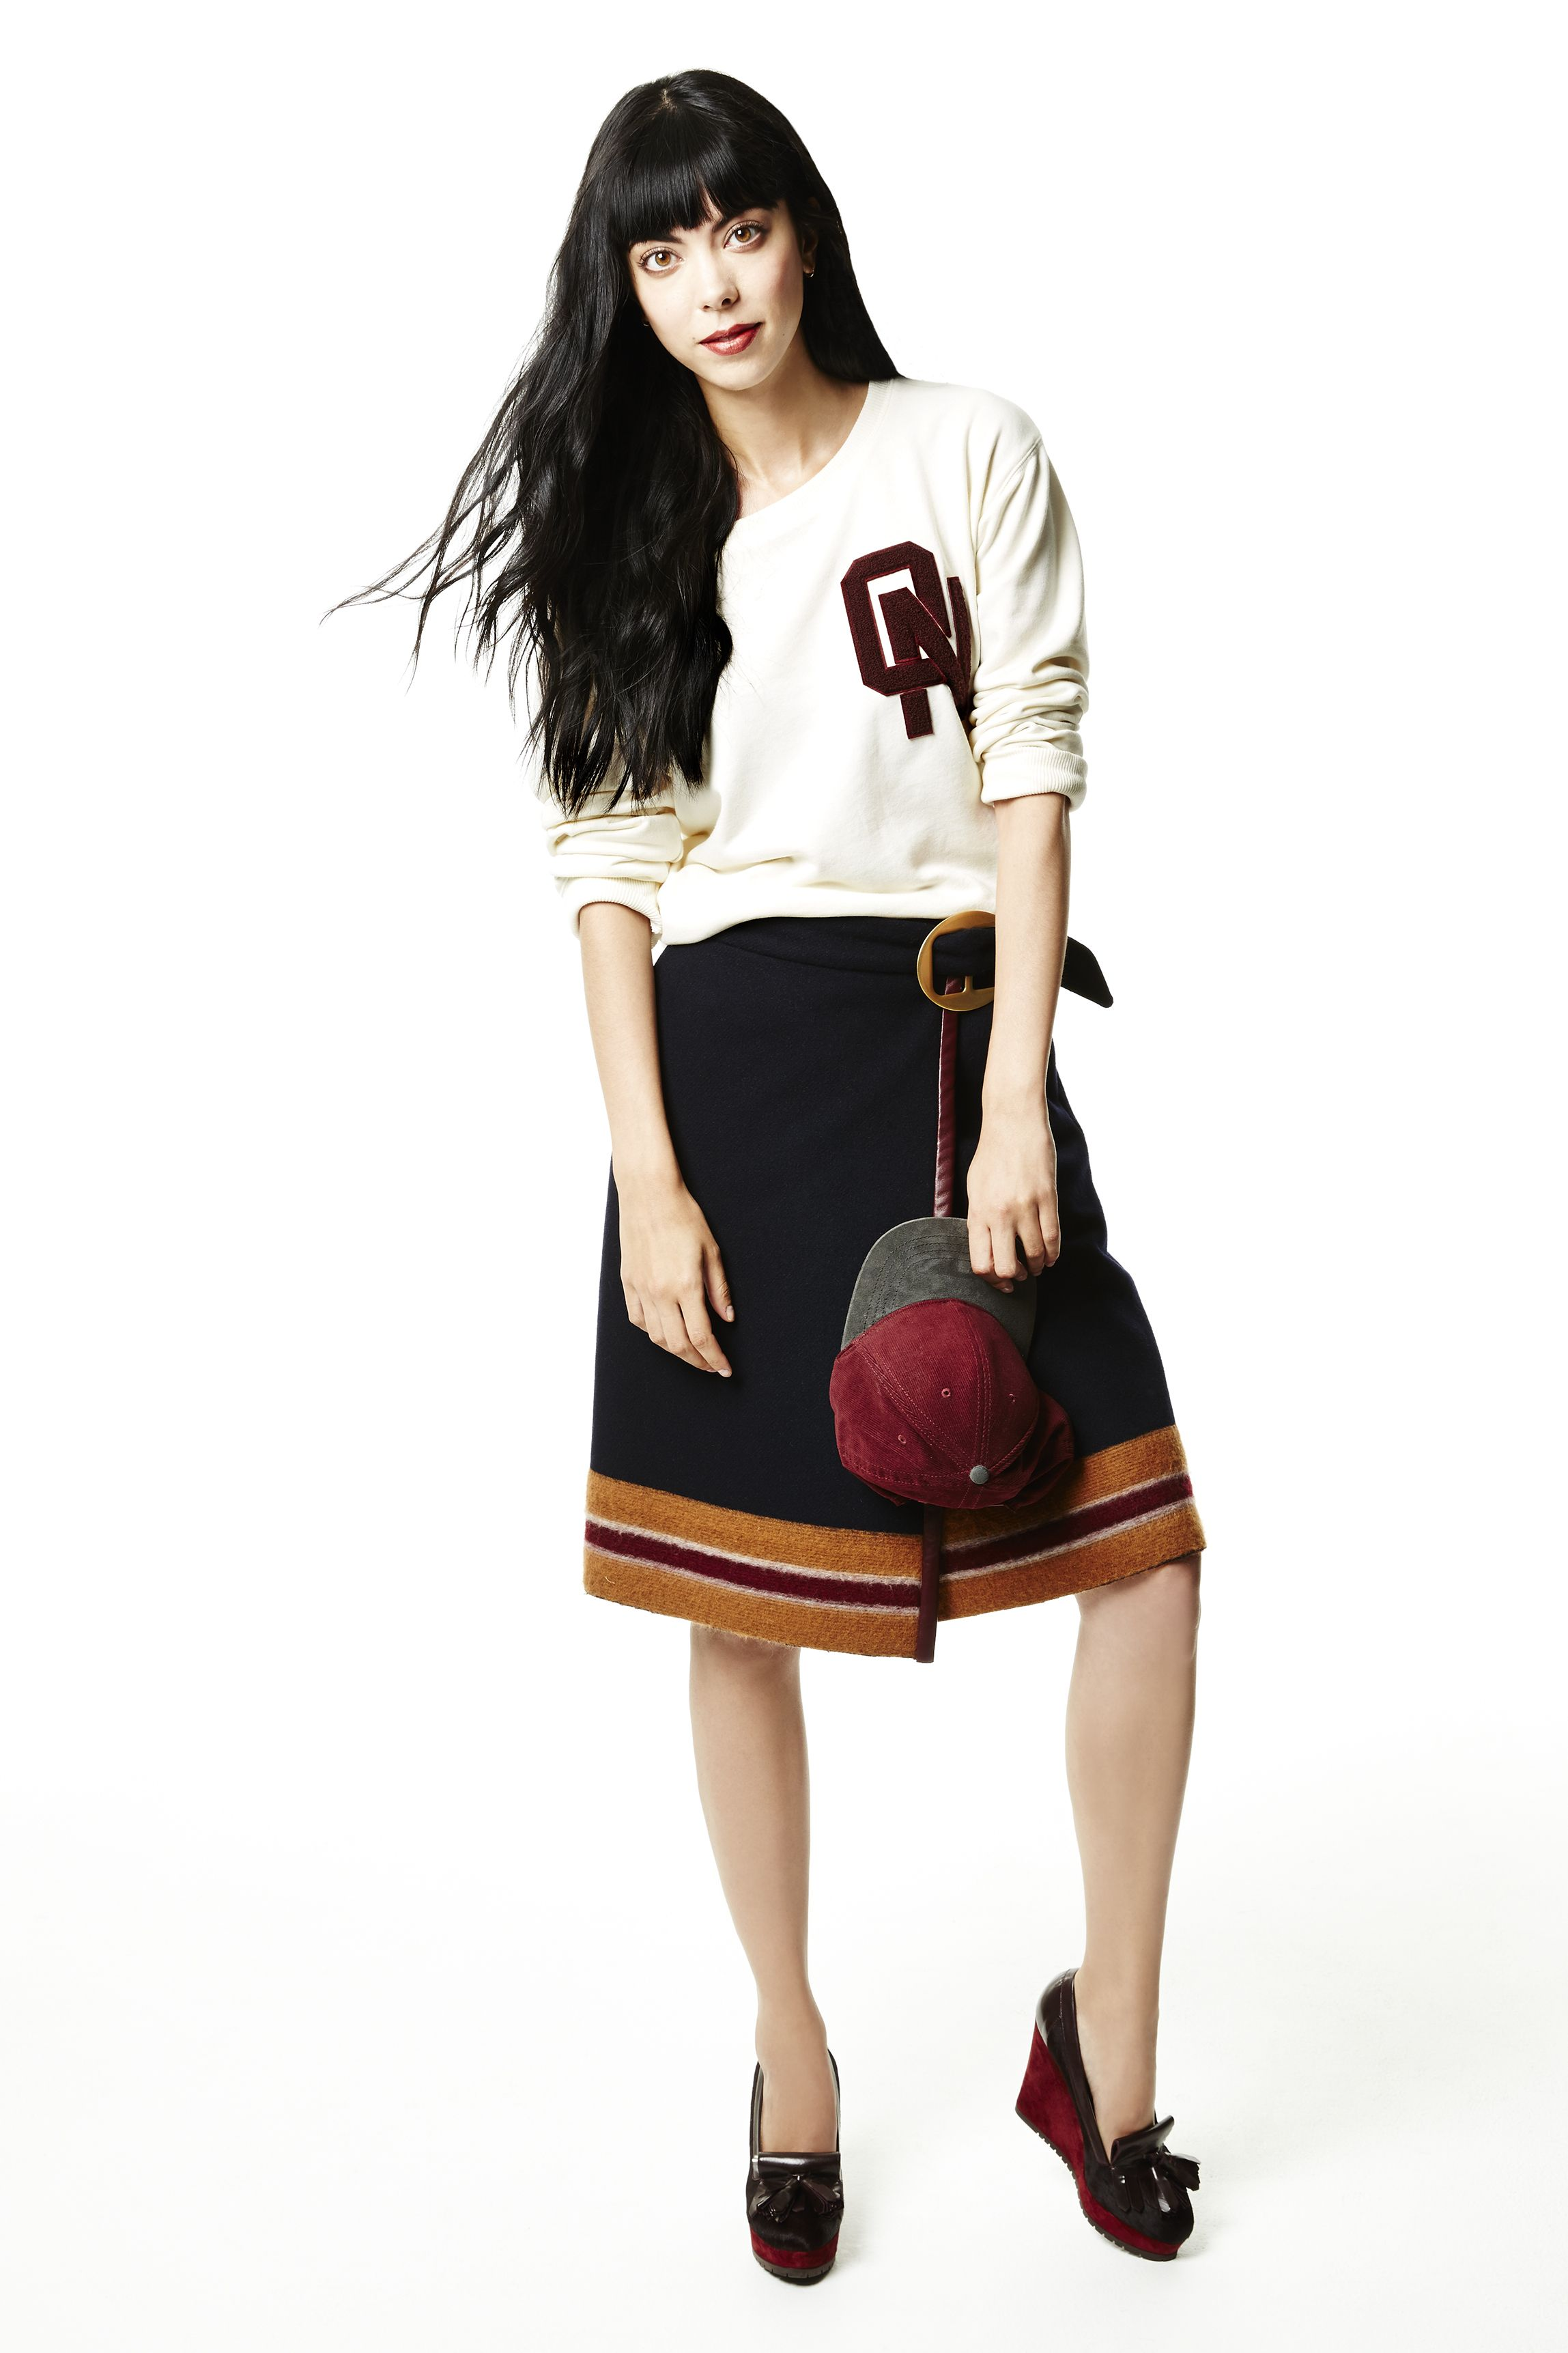 """<p>When you've outgrown the plaid miniskirt uniform, graduate to a knee-length wrap alternative with a striped hem. Pair it with high-heeled wedge tassel loafers, and then make it un-fussy (and totally not Britney-Spears-circa-1999) with sporty details: a baseball cap and a letterman sweatshirt with scrunched-up sleeves. </p><p><em>Old Navy Varsity Sweatshirt, $22, <a href=""""https://ad.doubleclick.net/ddm/clk/294200250;121252581;m"""" target=""""_blank"""">oldnavy.com</a>; Similar Tommy Hilfiger Skirt, $613, <a href=""""http://www.luisaviaroma.com/index.aspx?#ItemSrv.ashx%7cSeasonId=62I&CollectionId=4SY&ItemId=16&VendorColorId=MzIz0&SeasonMemoCode=actual&GenderMemoCode=women&CategoryId=&SubLineMemoCode="""" target=""""_blank"""">luisaviaroma.com</a>; Old Navy Colorblocked Baseball Cap,<em> $14.94, <a href=""""https://ad.doubleclick.net/ddm/clk/294200249;121252583;w"""" target=""""_blank"""">oldnavy.com</a>; Longchamp Pénélope Moccasins, $540, <a href=""""http://us.longchamp.com/shoes/penelope/moccasins-8383sdb?sku=33957"""" target=""""_blank"""">longchamp.com</a></em></em></p>"""